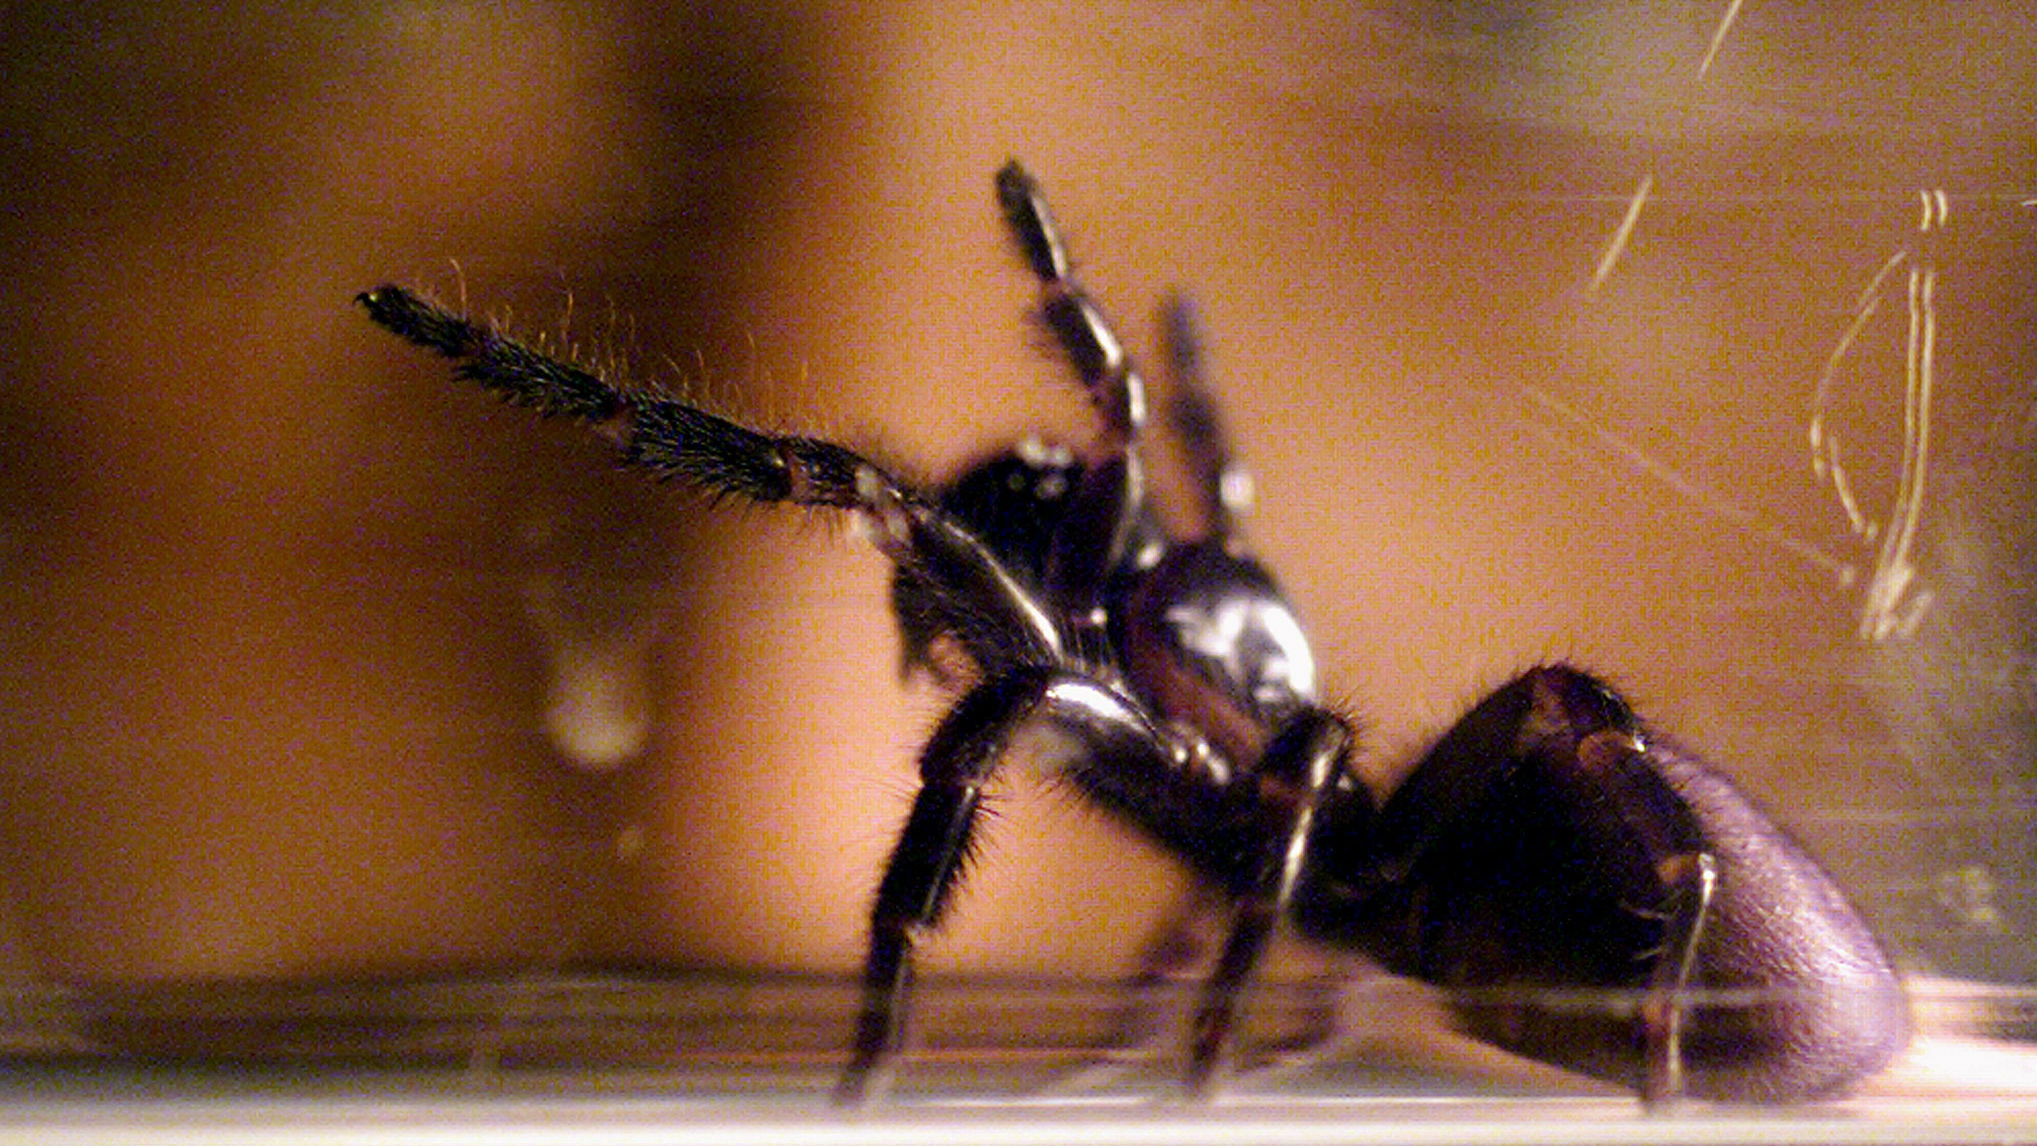 A funnel web spider rearing as it is milked for venom.